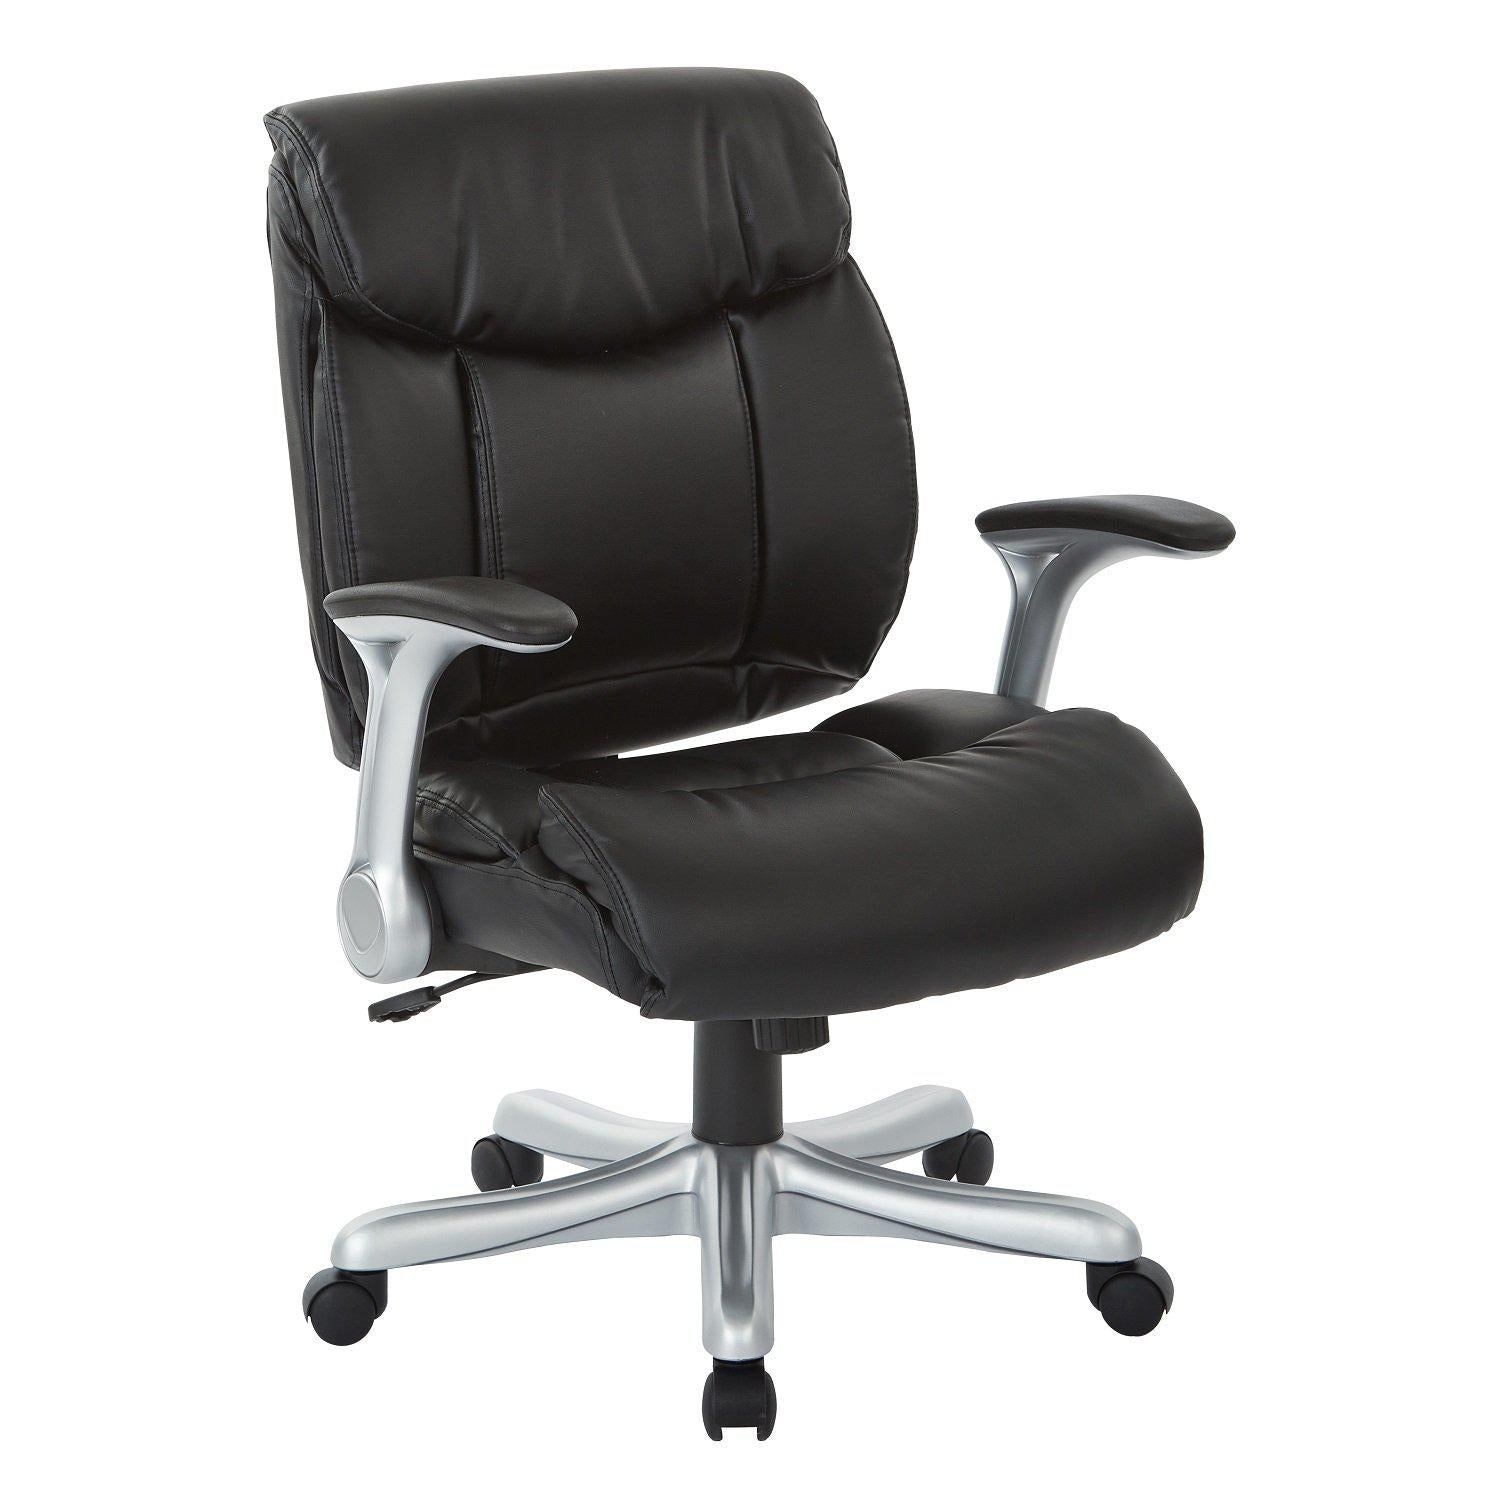 Executive Bonded Leather Chair with Padded Flip Arms